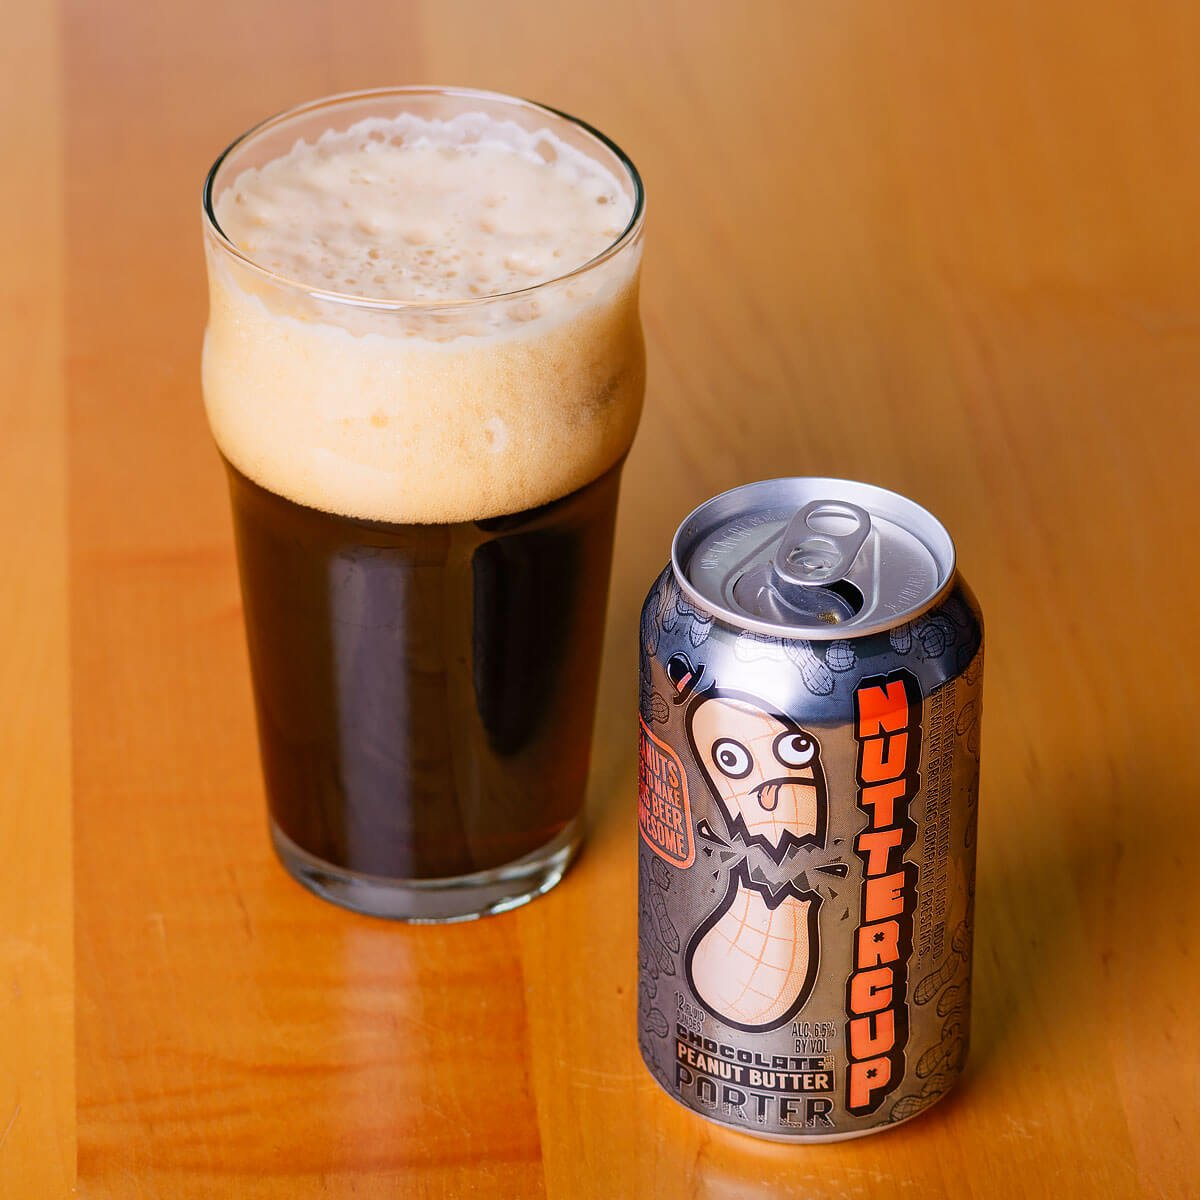 Nuttercup, an American Porter by Brew Link Brewing Company